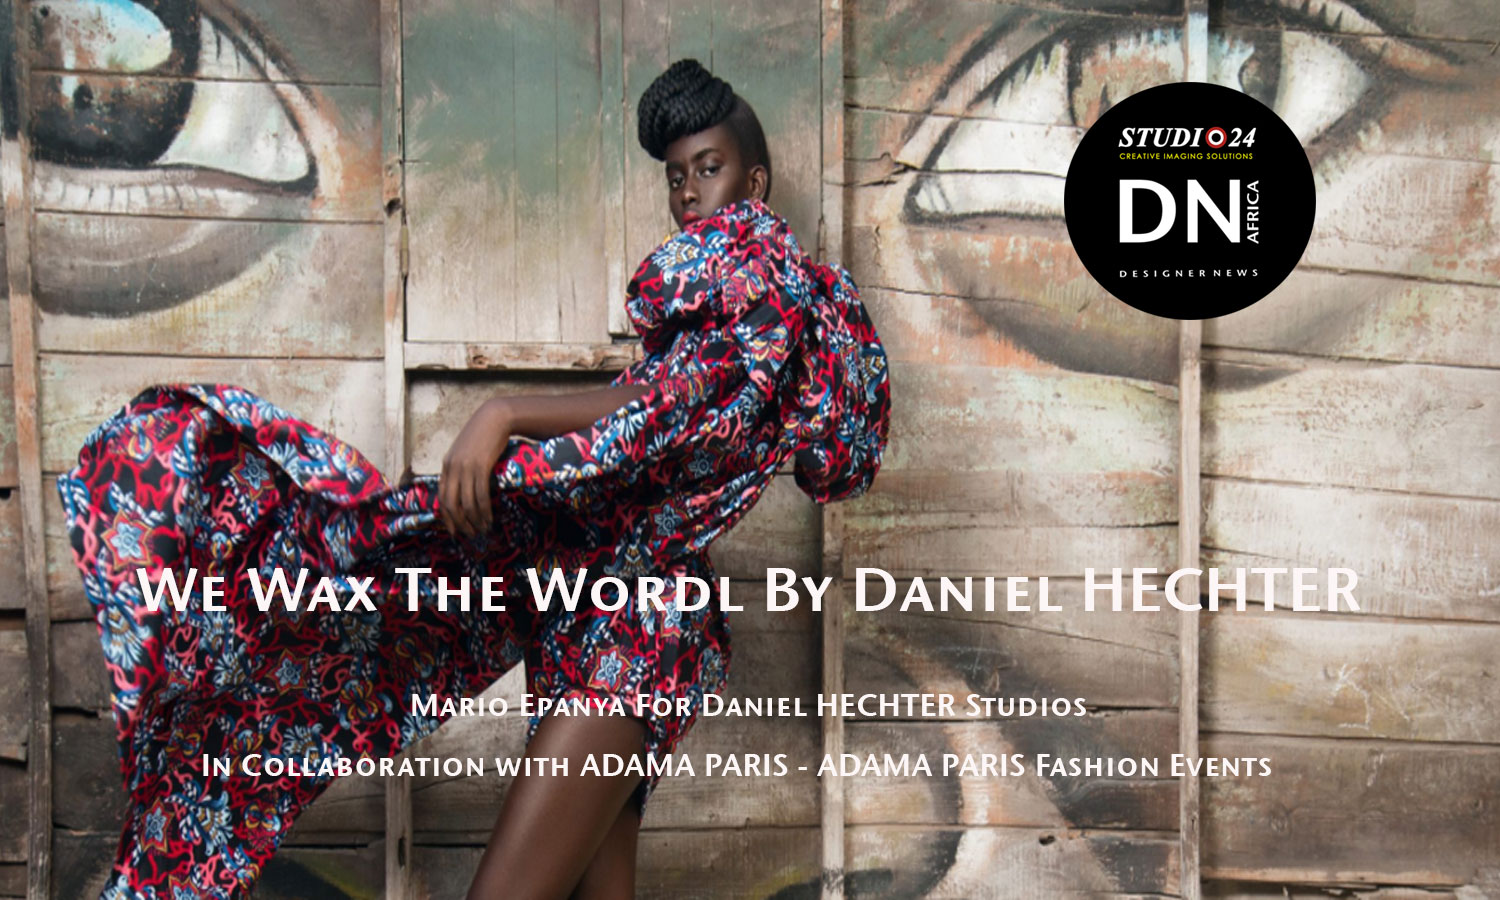 AFRICAN FASHION STYLE MAGAZINE - WE WAX THE WORLD BY DANIEL HECHTER BAZIN FABRICS - Adama Paris - Adama Paris Fashion Events Partner - Media Partner DN MAG, DN AFRICA -STUDIO 24 NIGERIA - STUDIO 24 INTERNATIONAL